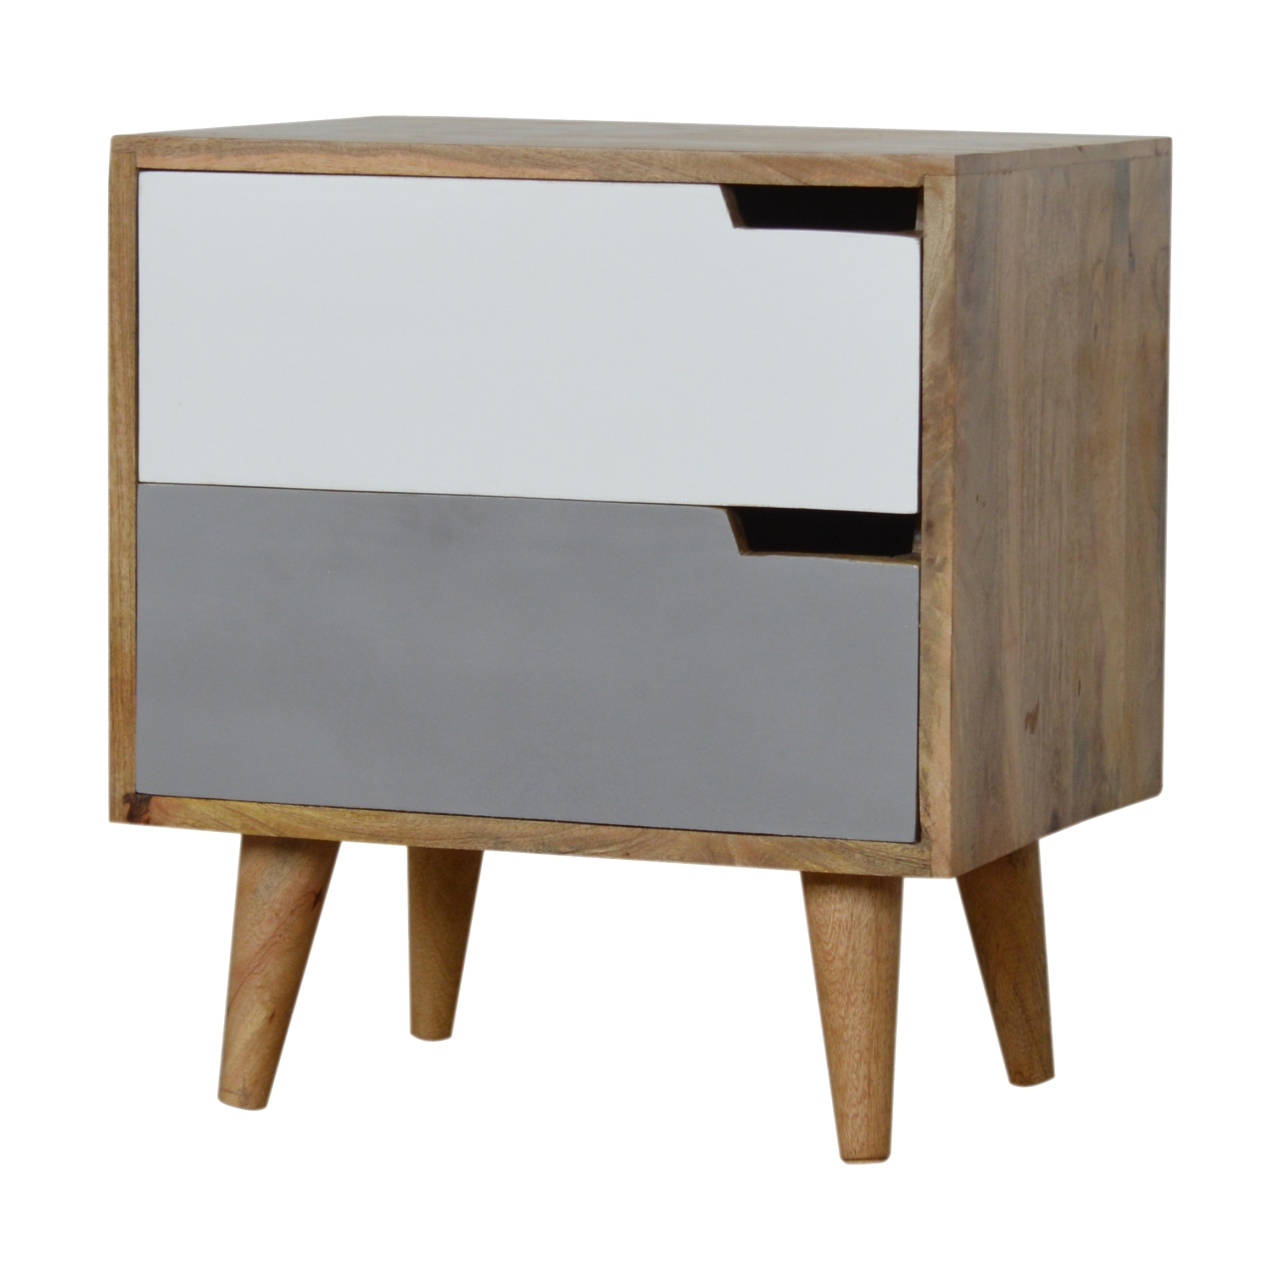 The Home Furnishings Company Nordic Style Grey 2 Drawer Bedside Table